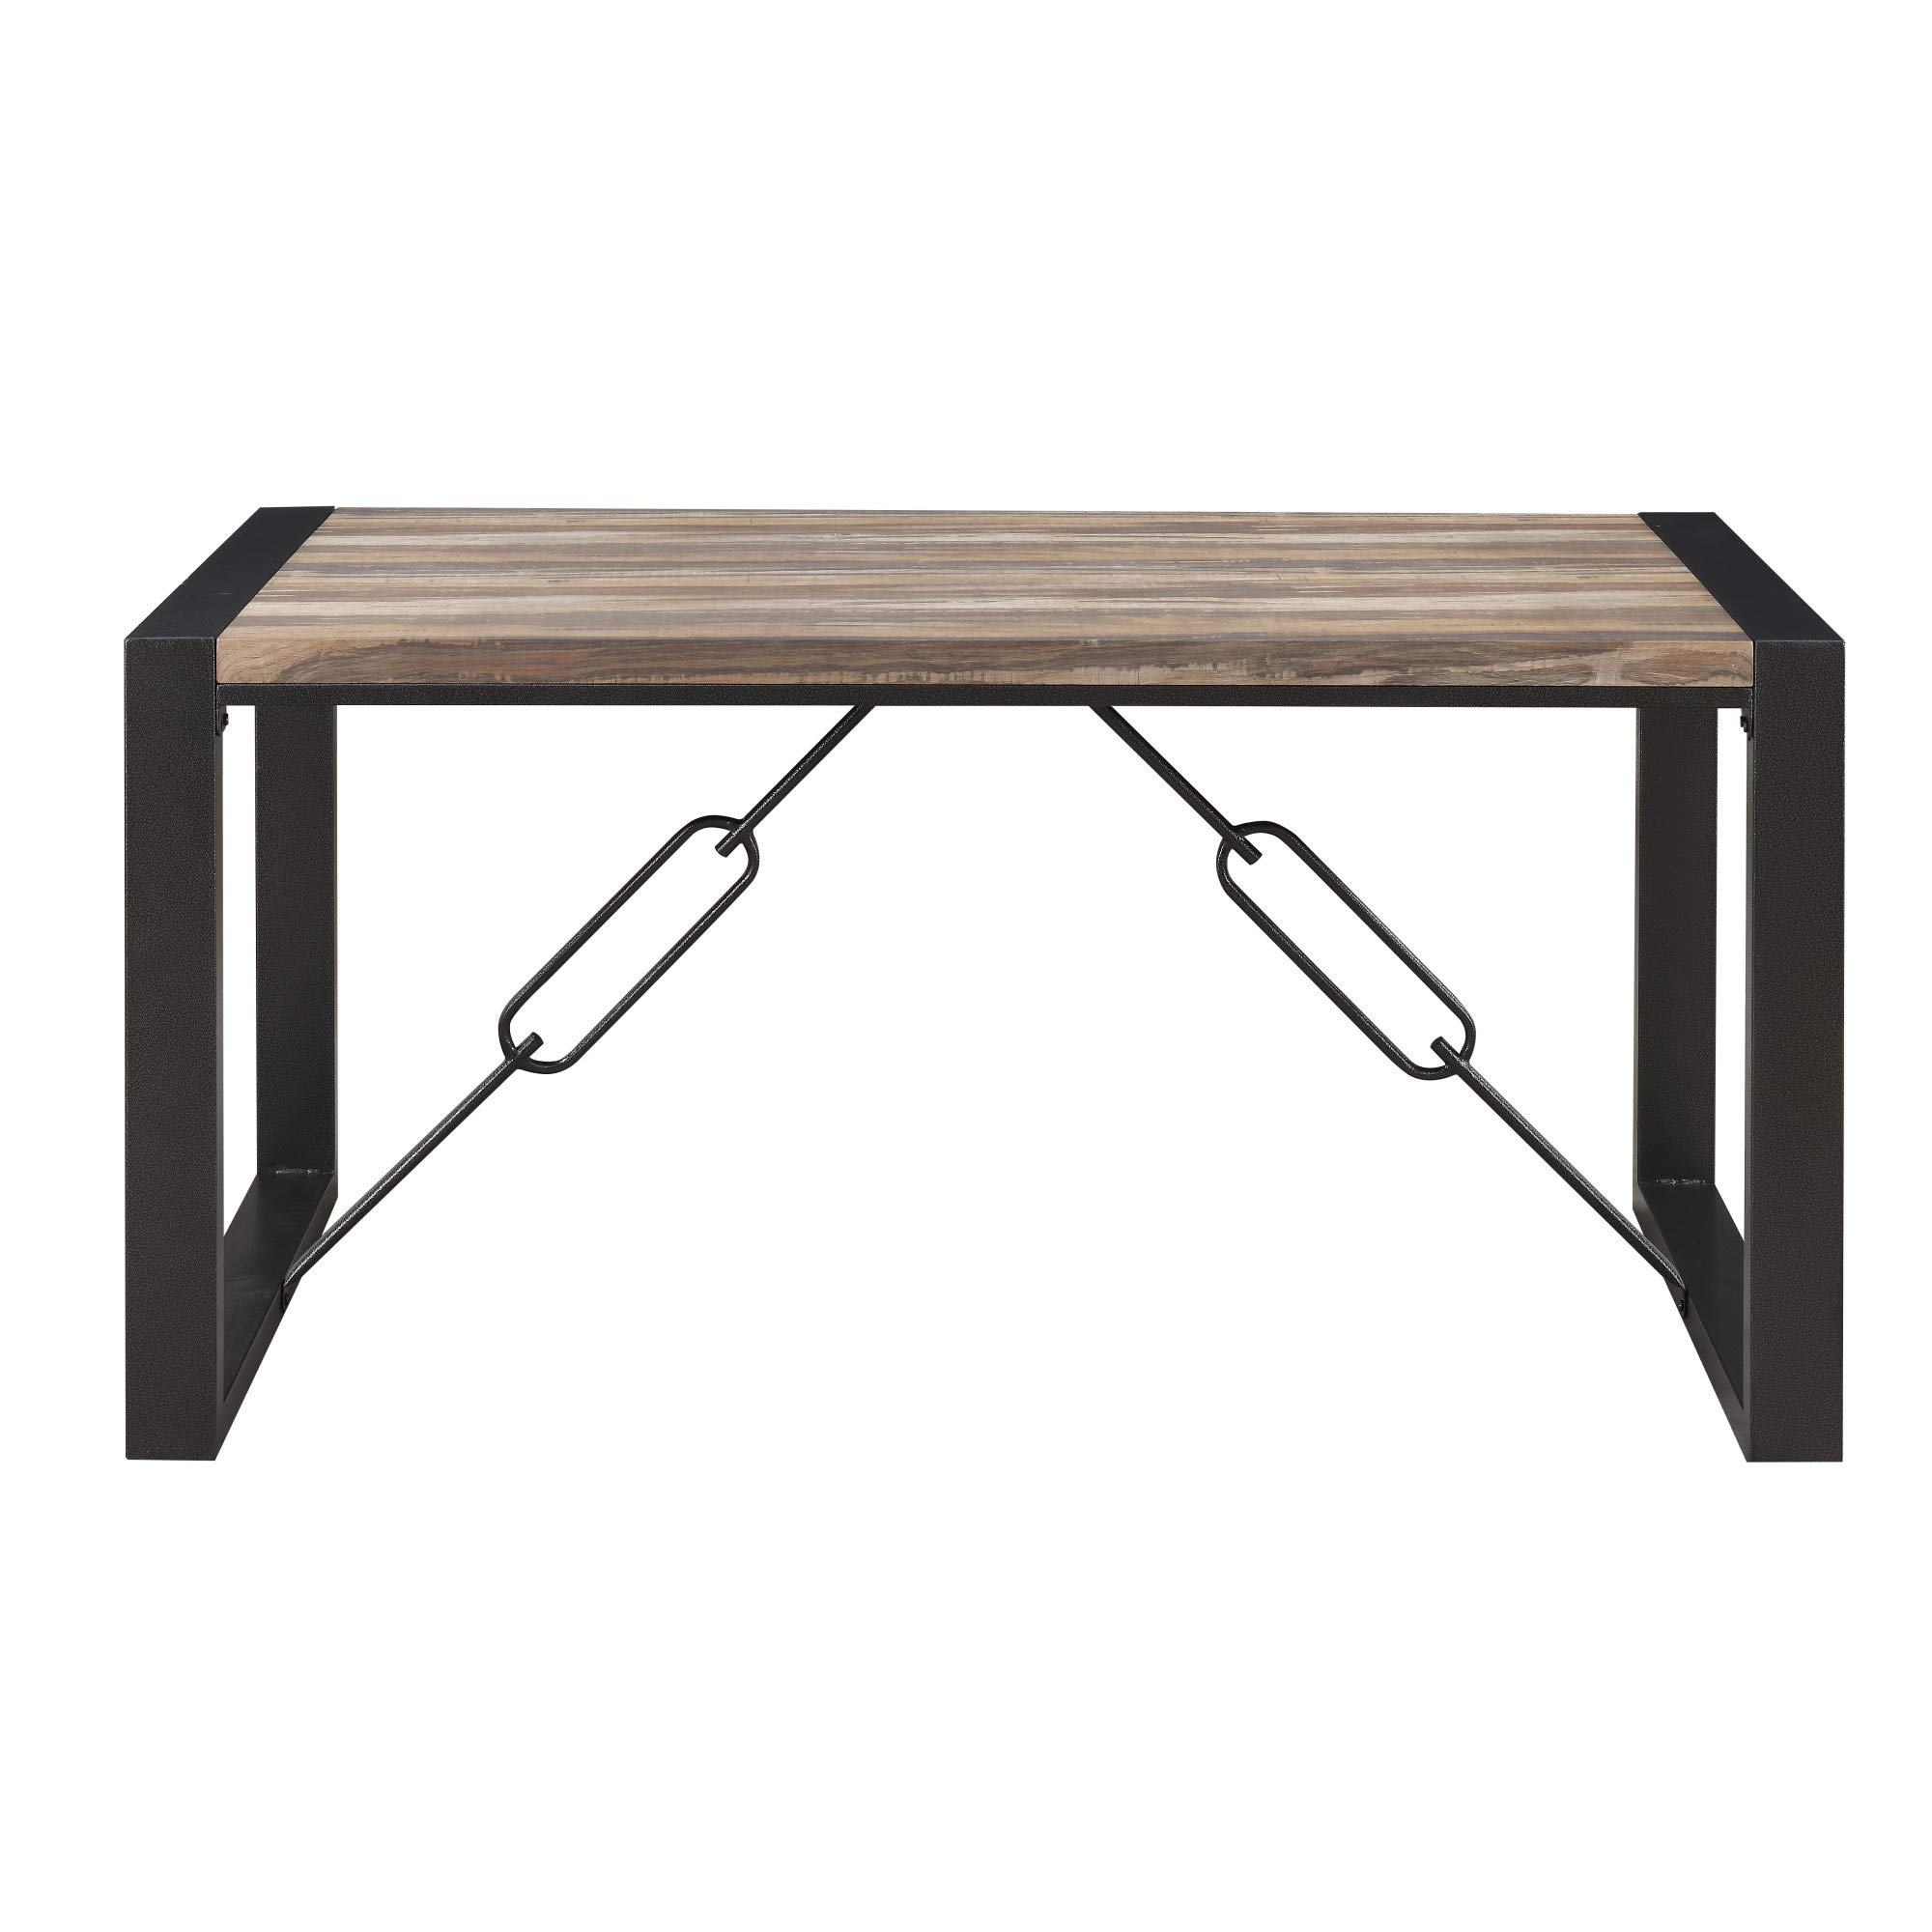 Taras 59'' Dining Table in Jet Black with Wood Veneer Top And Metal Base, by Artum Hill by Artum Hill (Image #2)